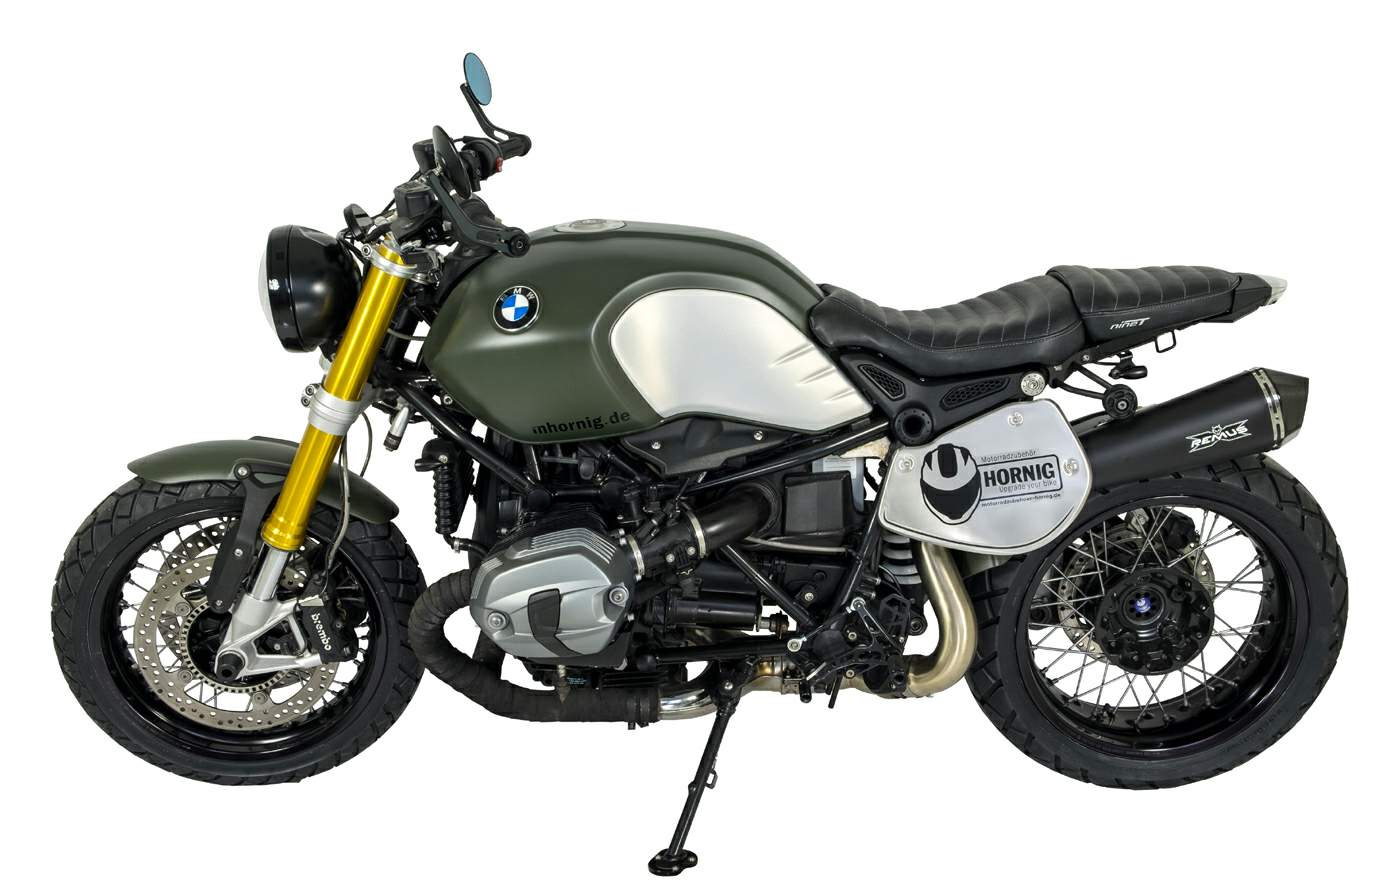 BMW R nineT conversion kit by  Hornig For Sale Specifications, Price and Images